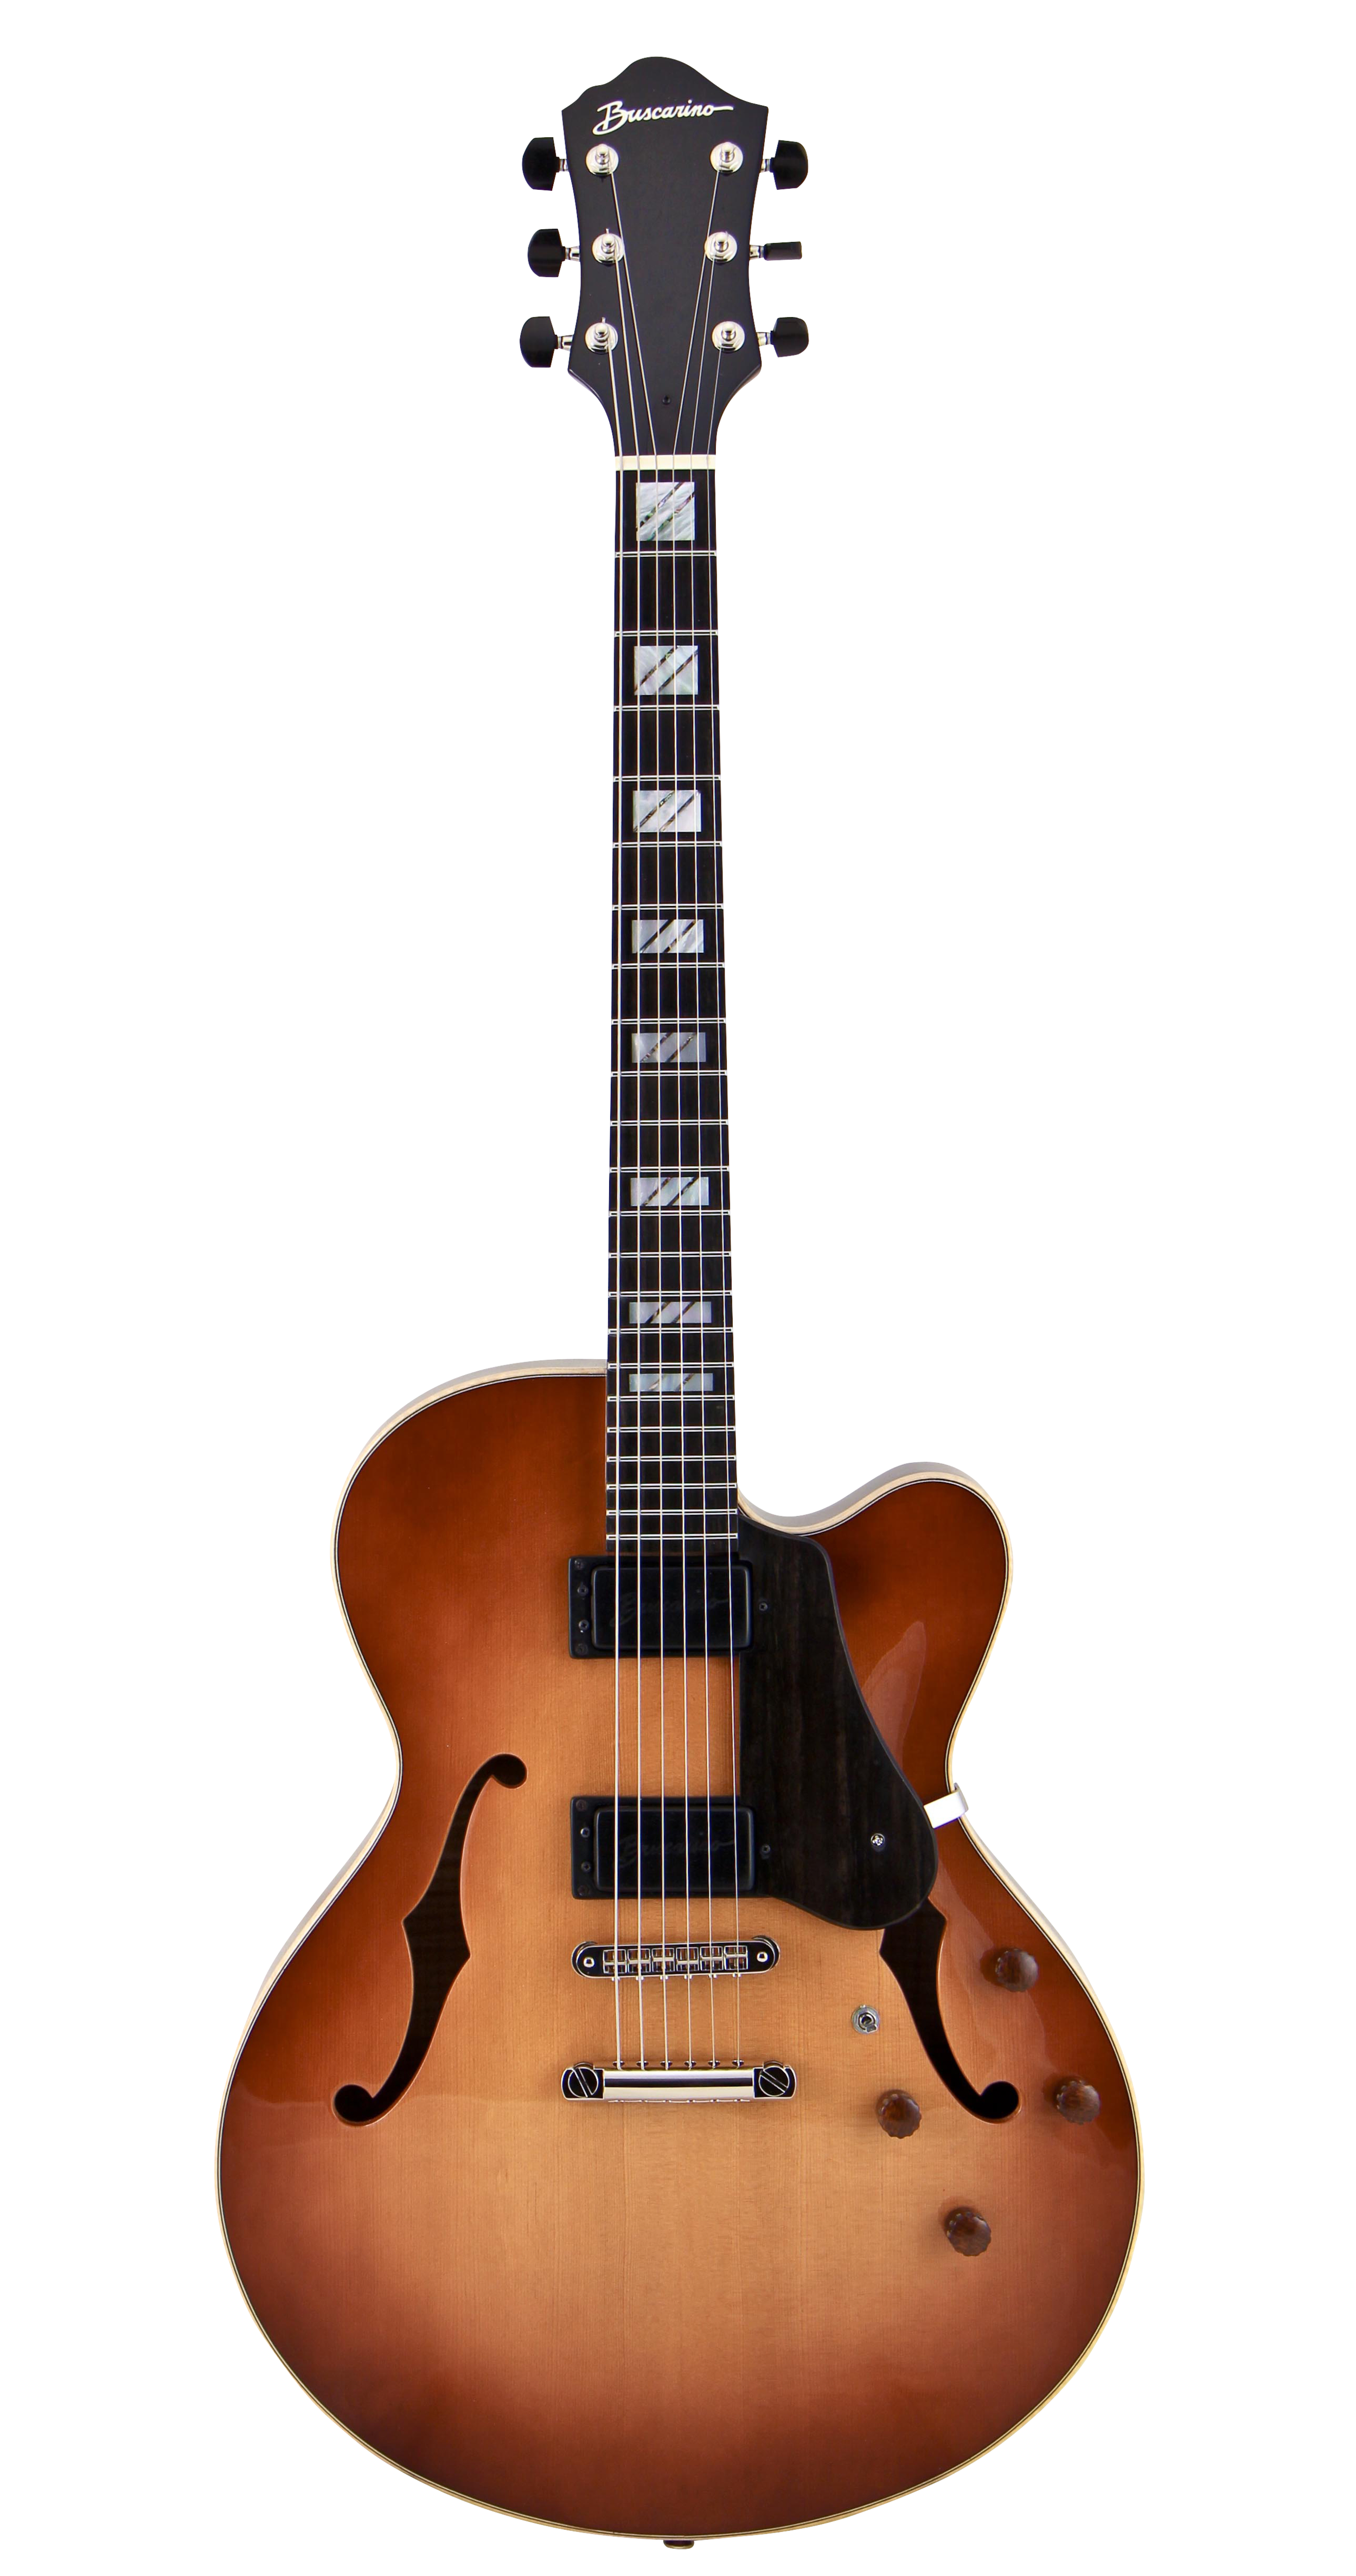 The Corey Archtop